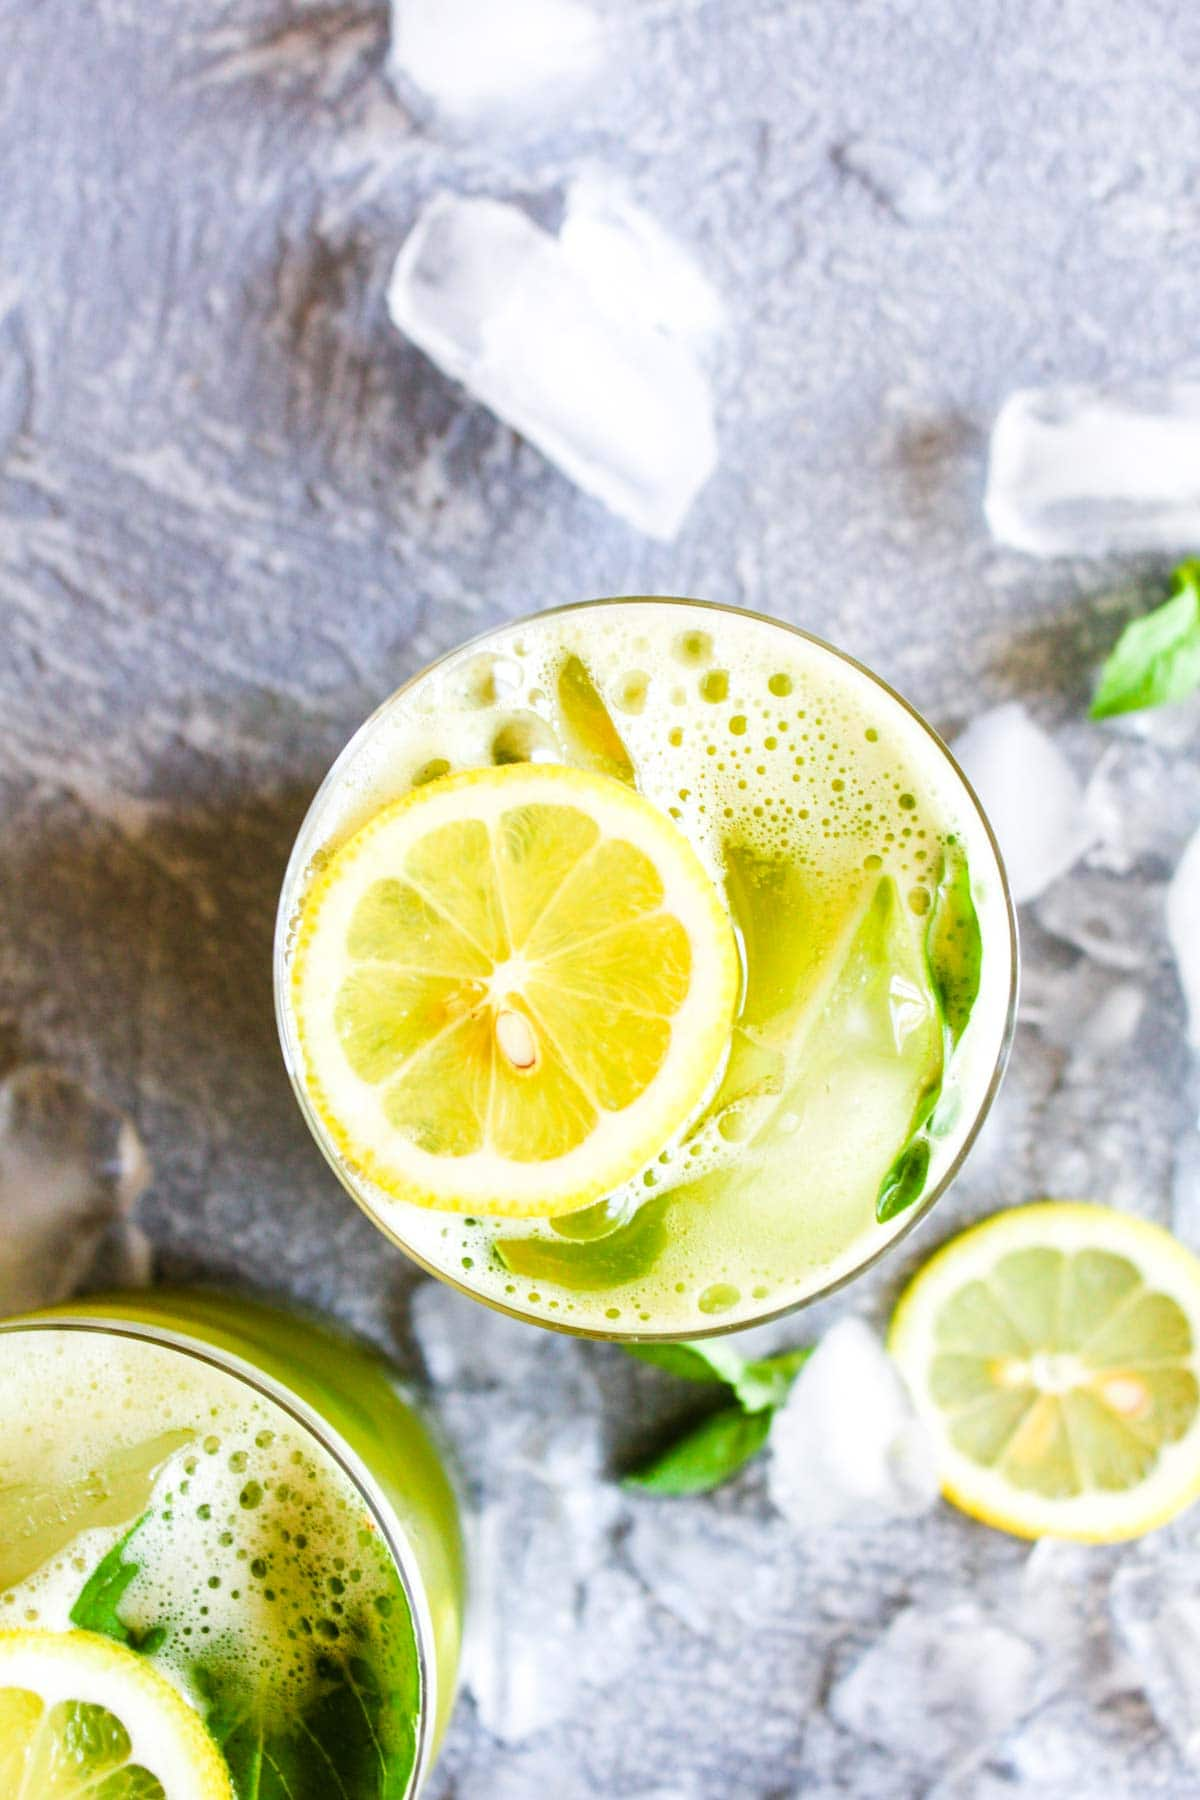 10 minute Matcha Basil Lemonade is a refreshing summer drink sweetened with honey! This healthy beverage is paleo and full of antioxidants.   CatchingSeeds.com